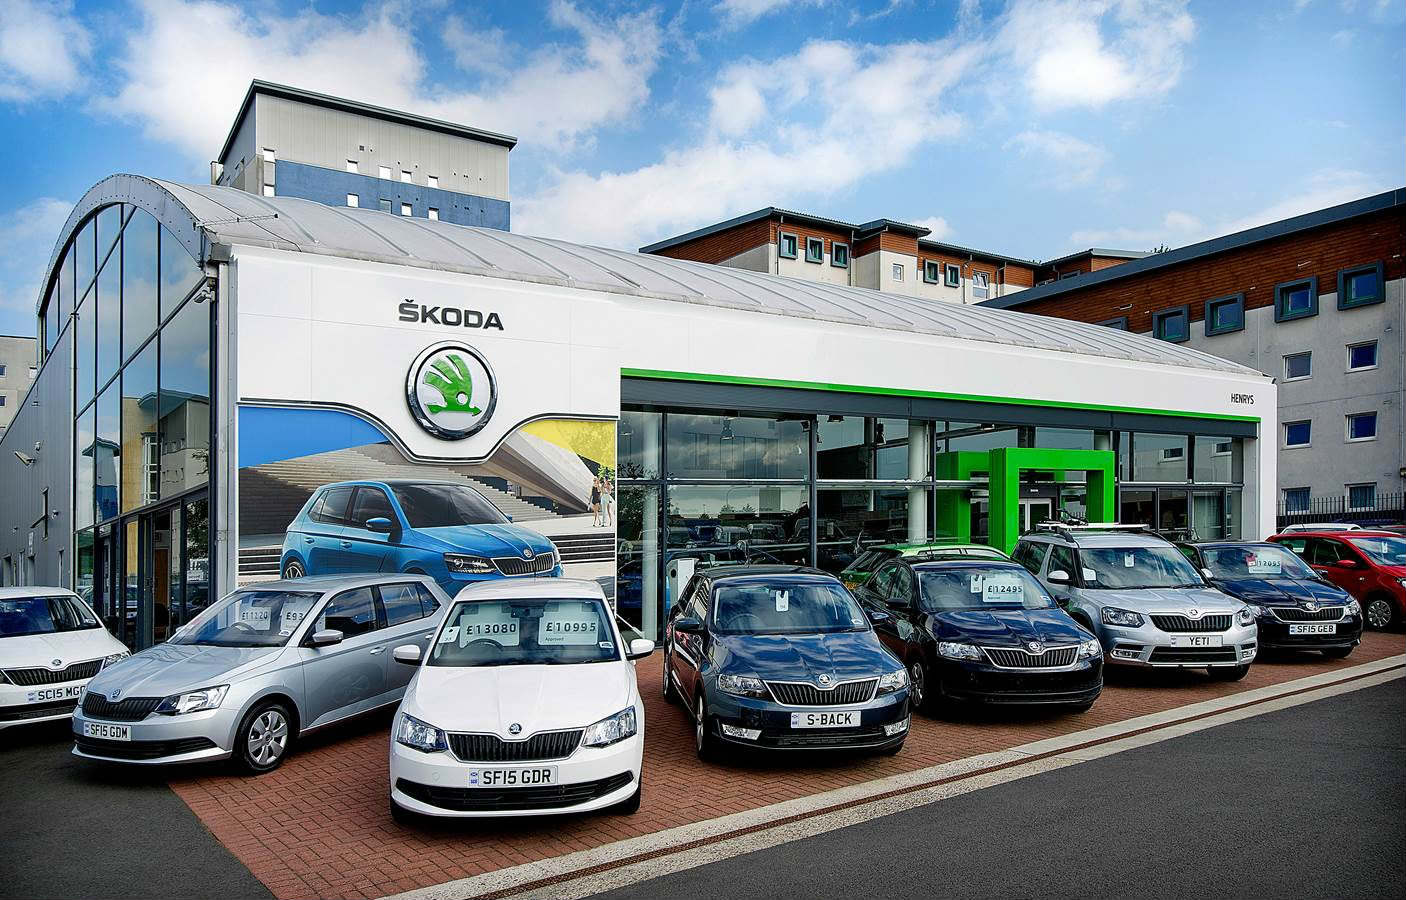 image of skoda cars parked on the lot of a skoda main dealership